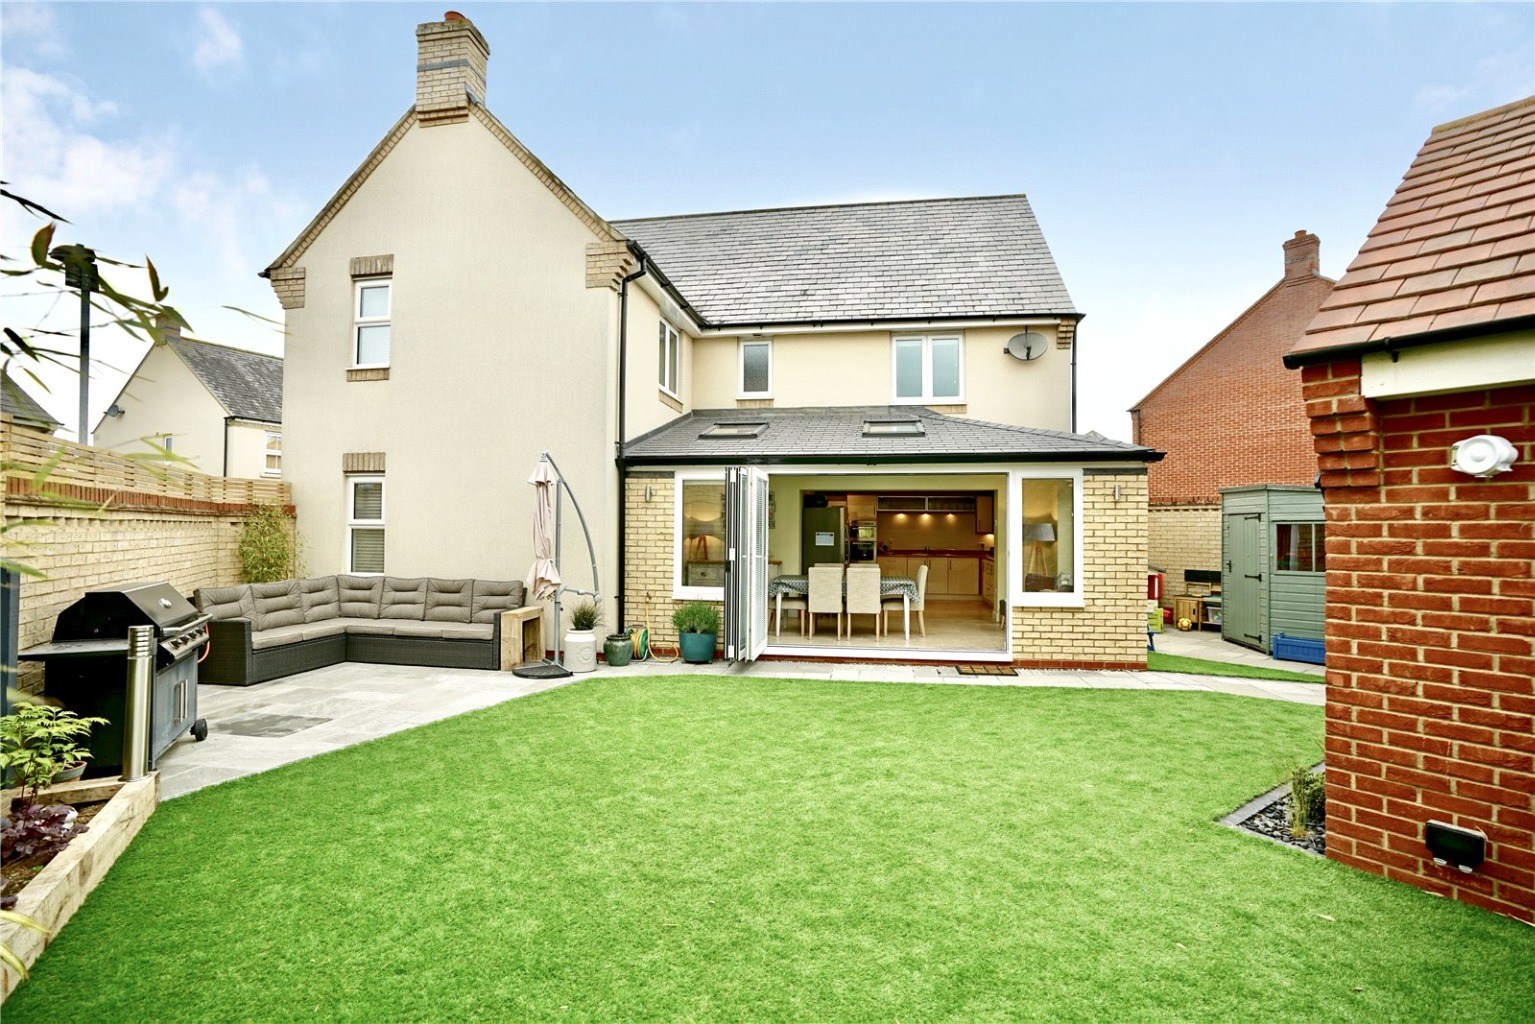 4 bed detached house for sale in Lannesbury Crescent, St. Neots 0